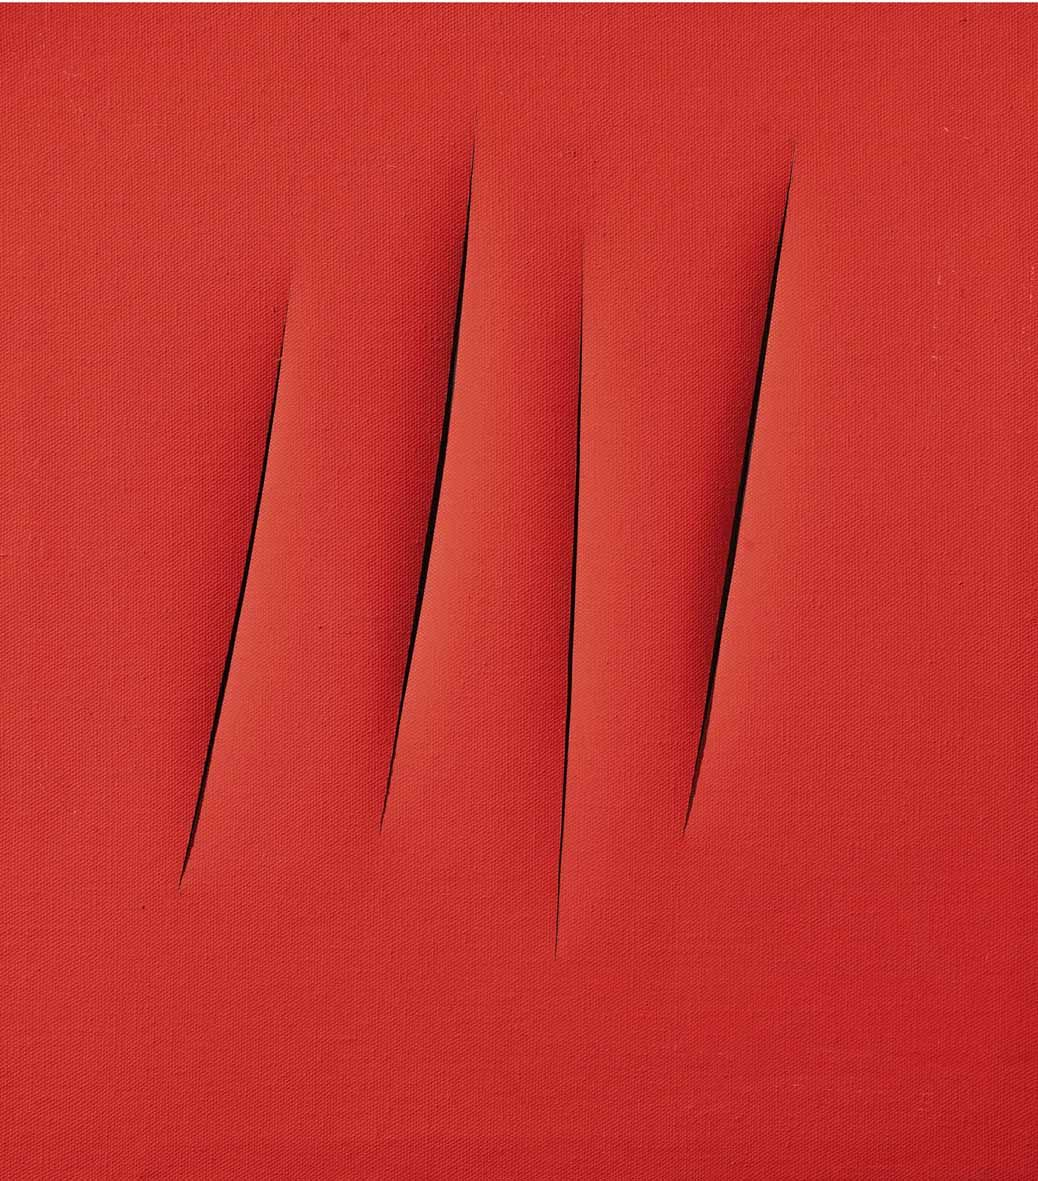 red painting by lucio fontana with slits